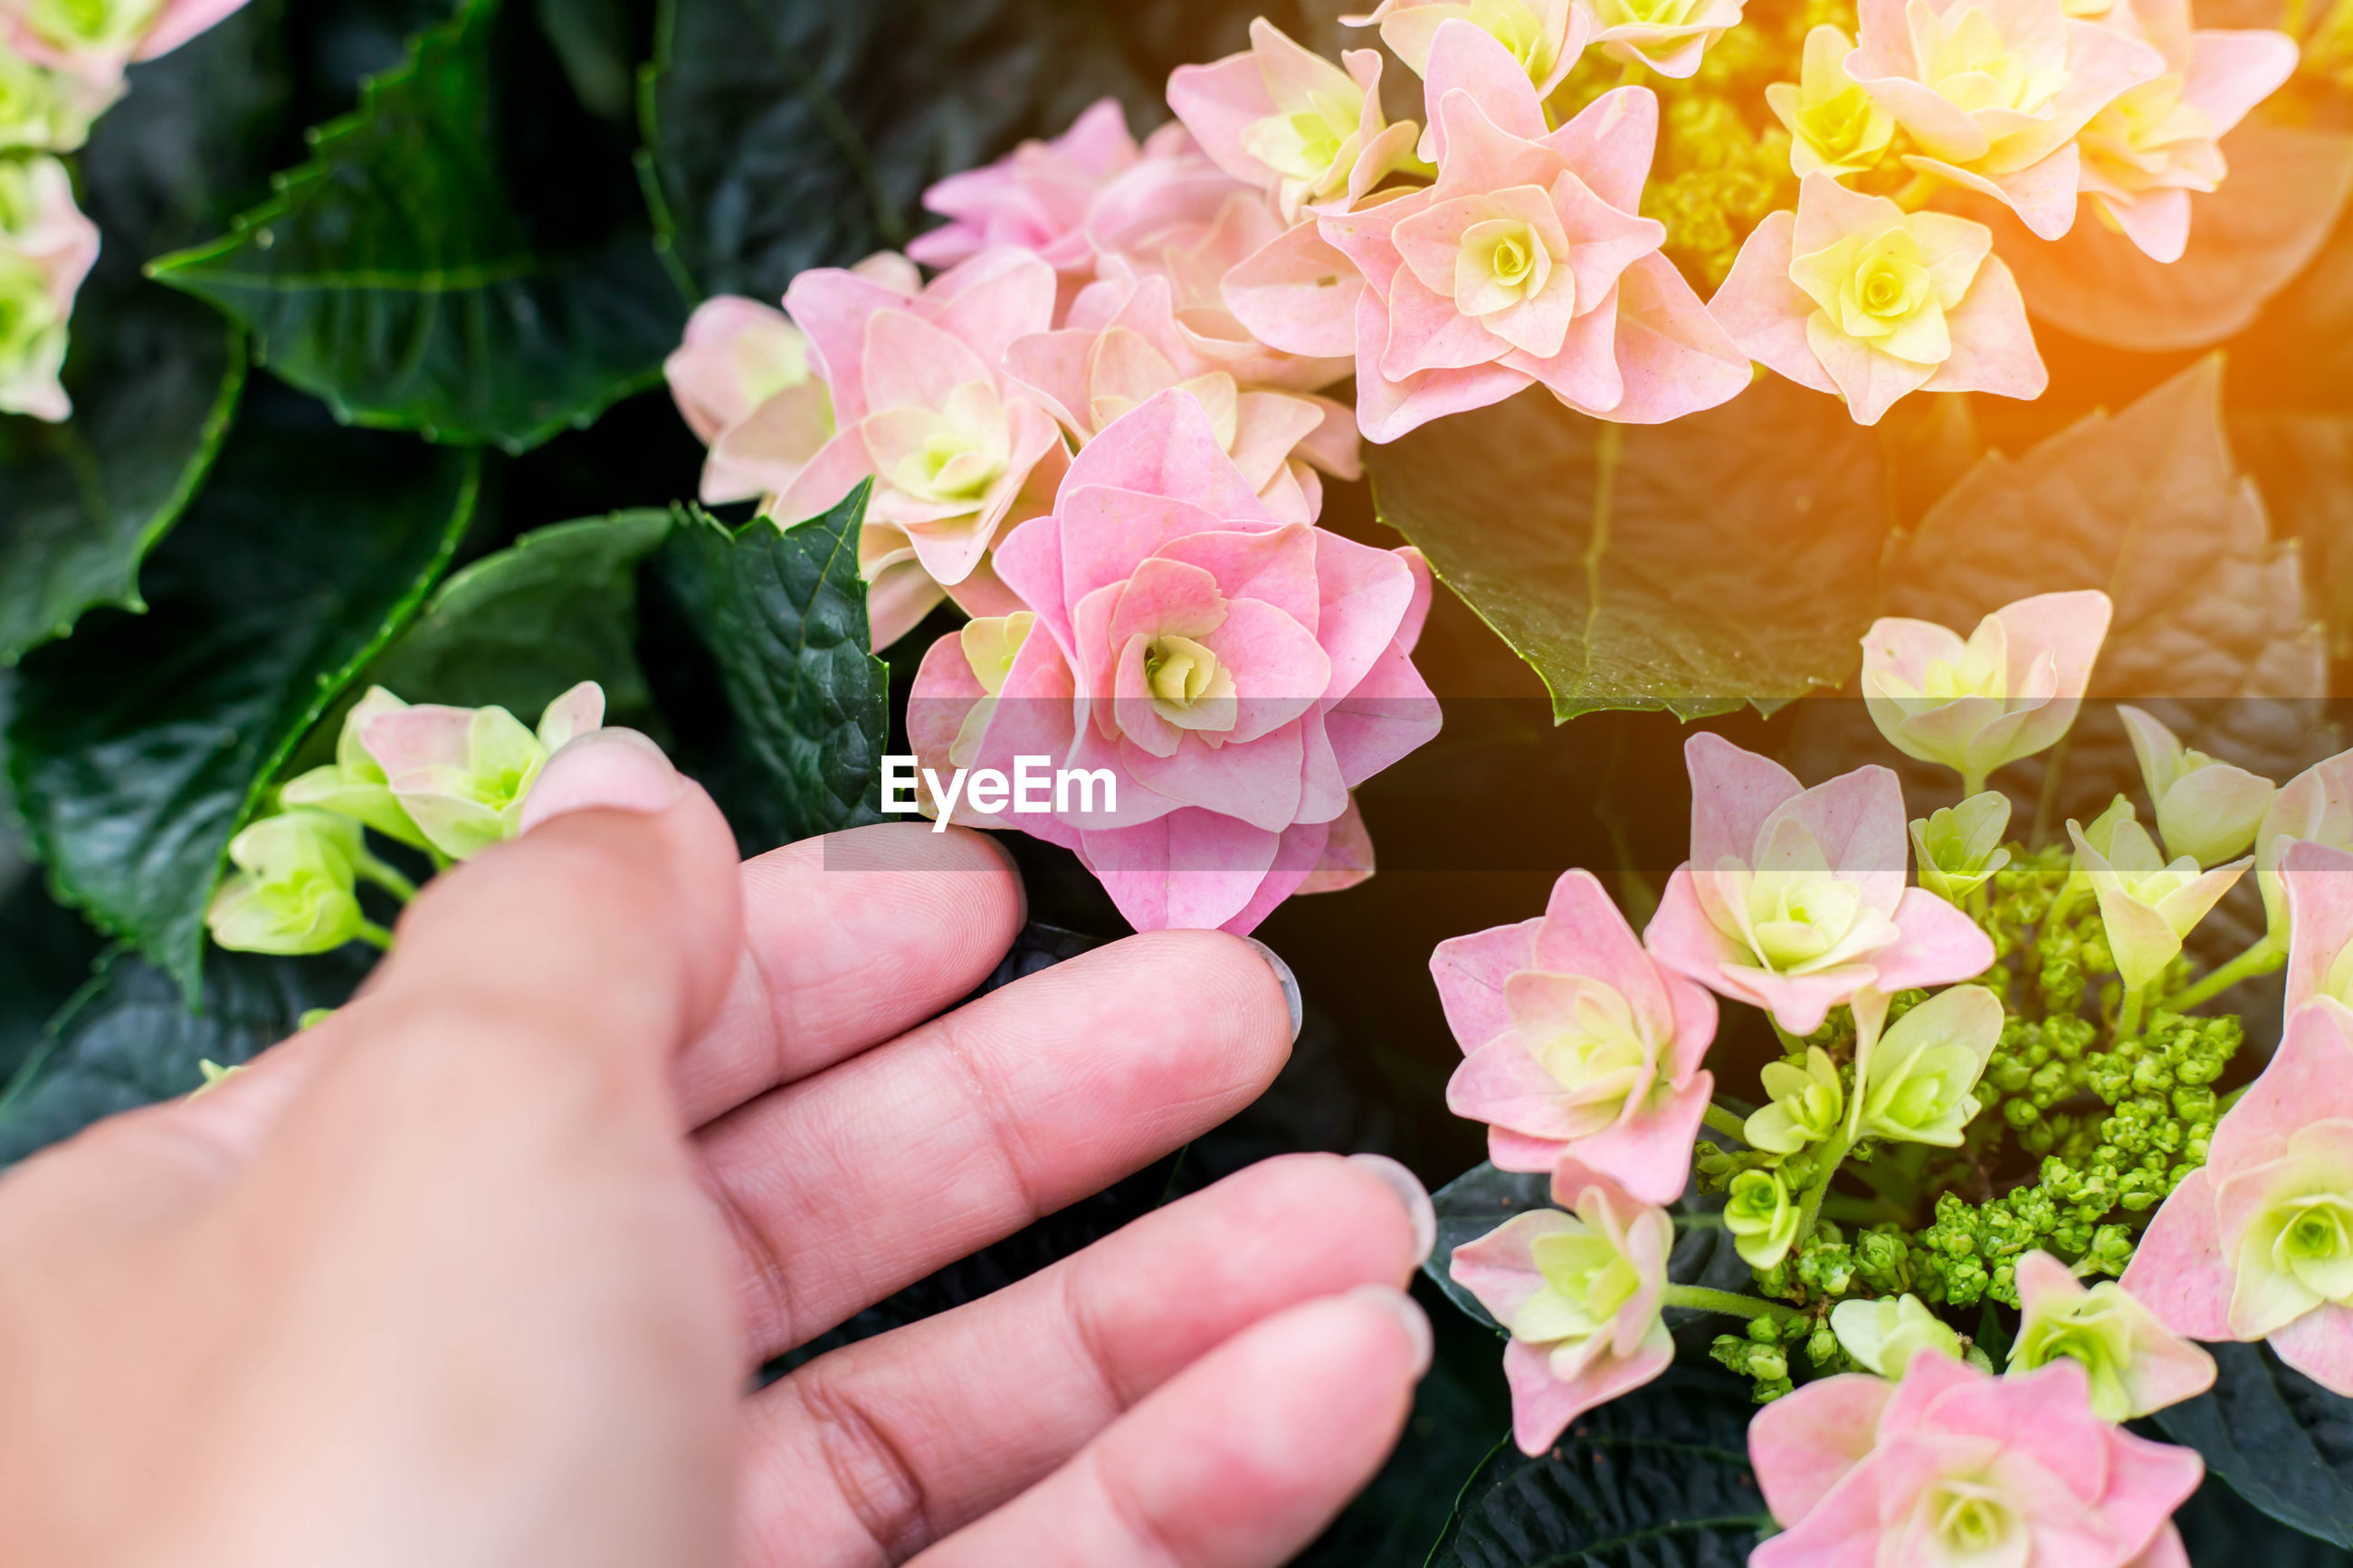 Close-up of hand holding flowering plants